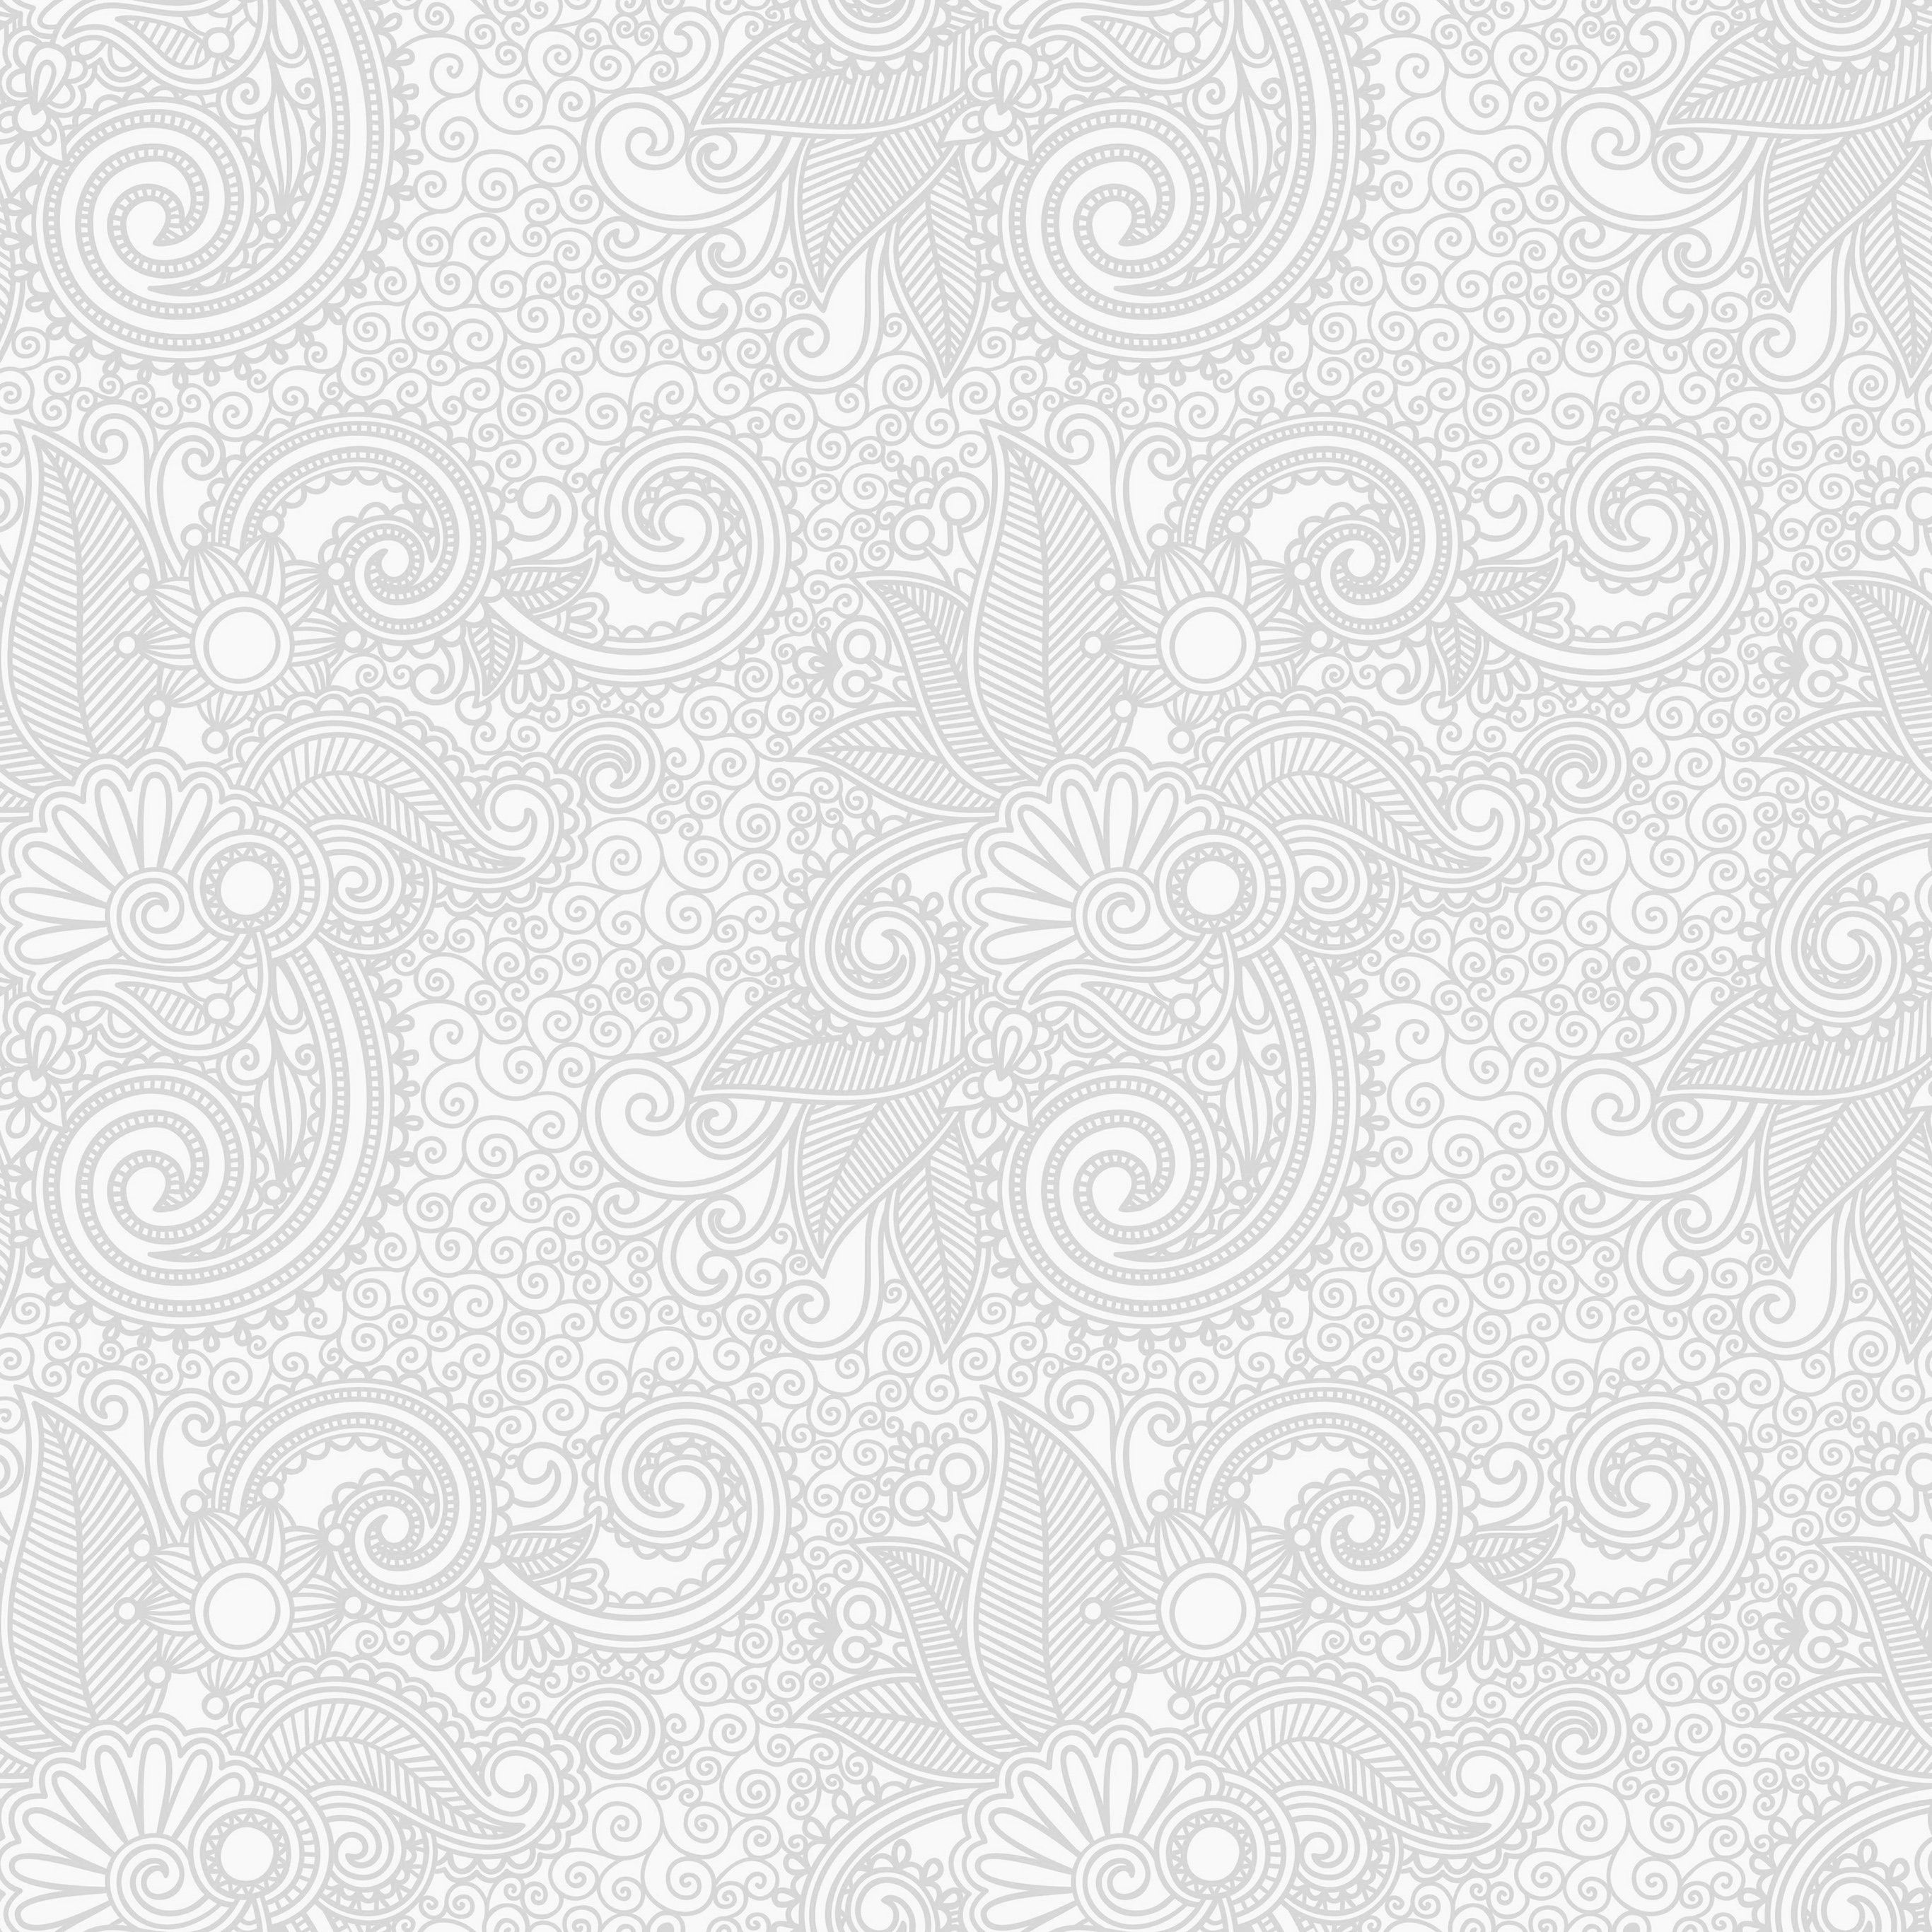 Androidpapers vk30 wallpaper design flower line white bw pattern large voltagebd Images